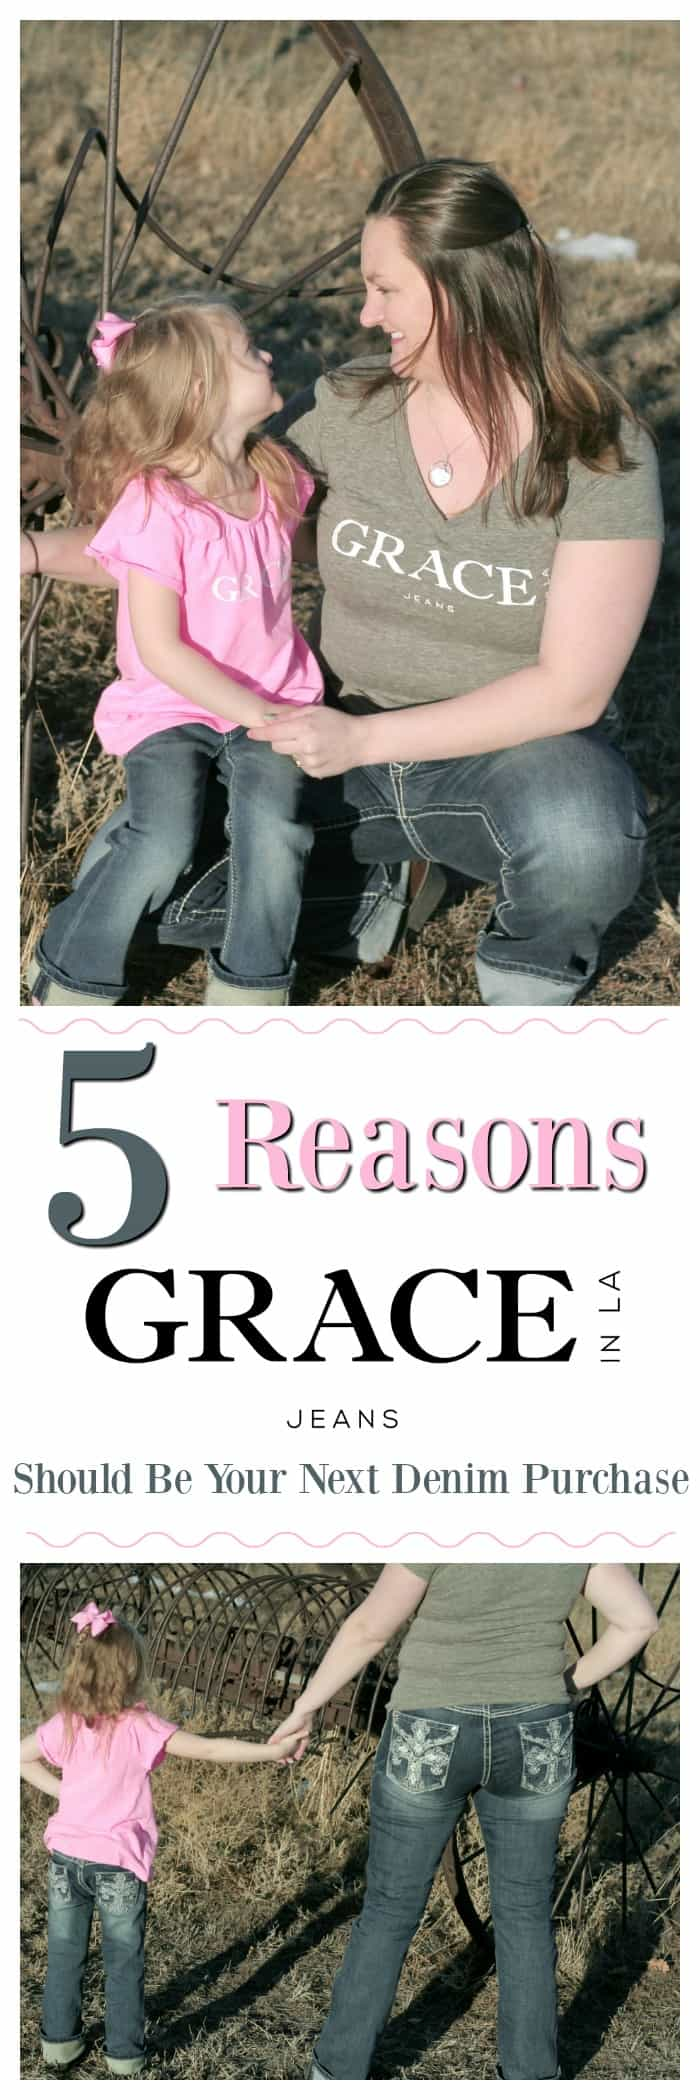 Grace In LA Review, What makes Grace In LA Different, What clothing styles does Grace In LA have, Is Grace In LA just western wear, Mommy and Me Jeans